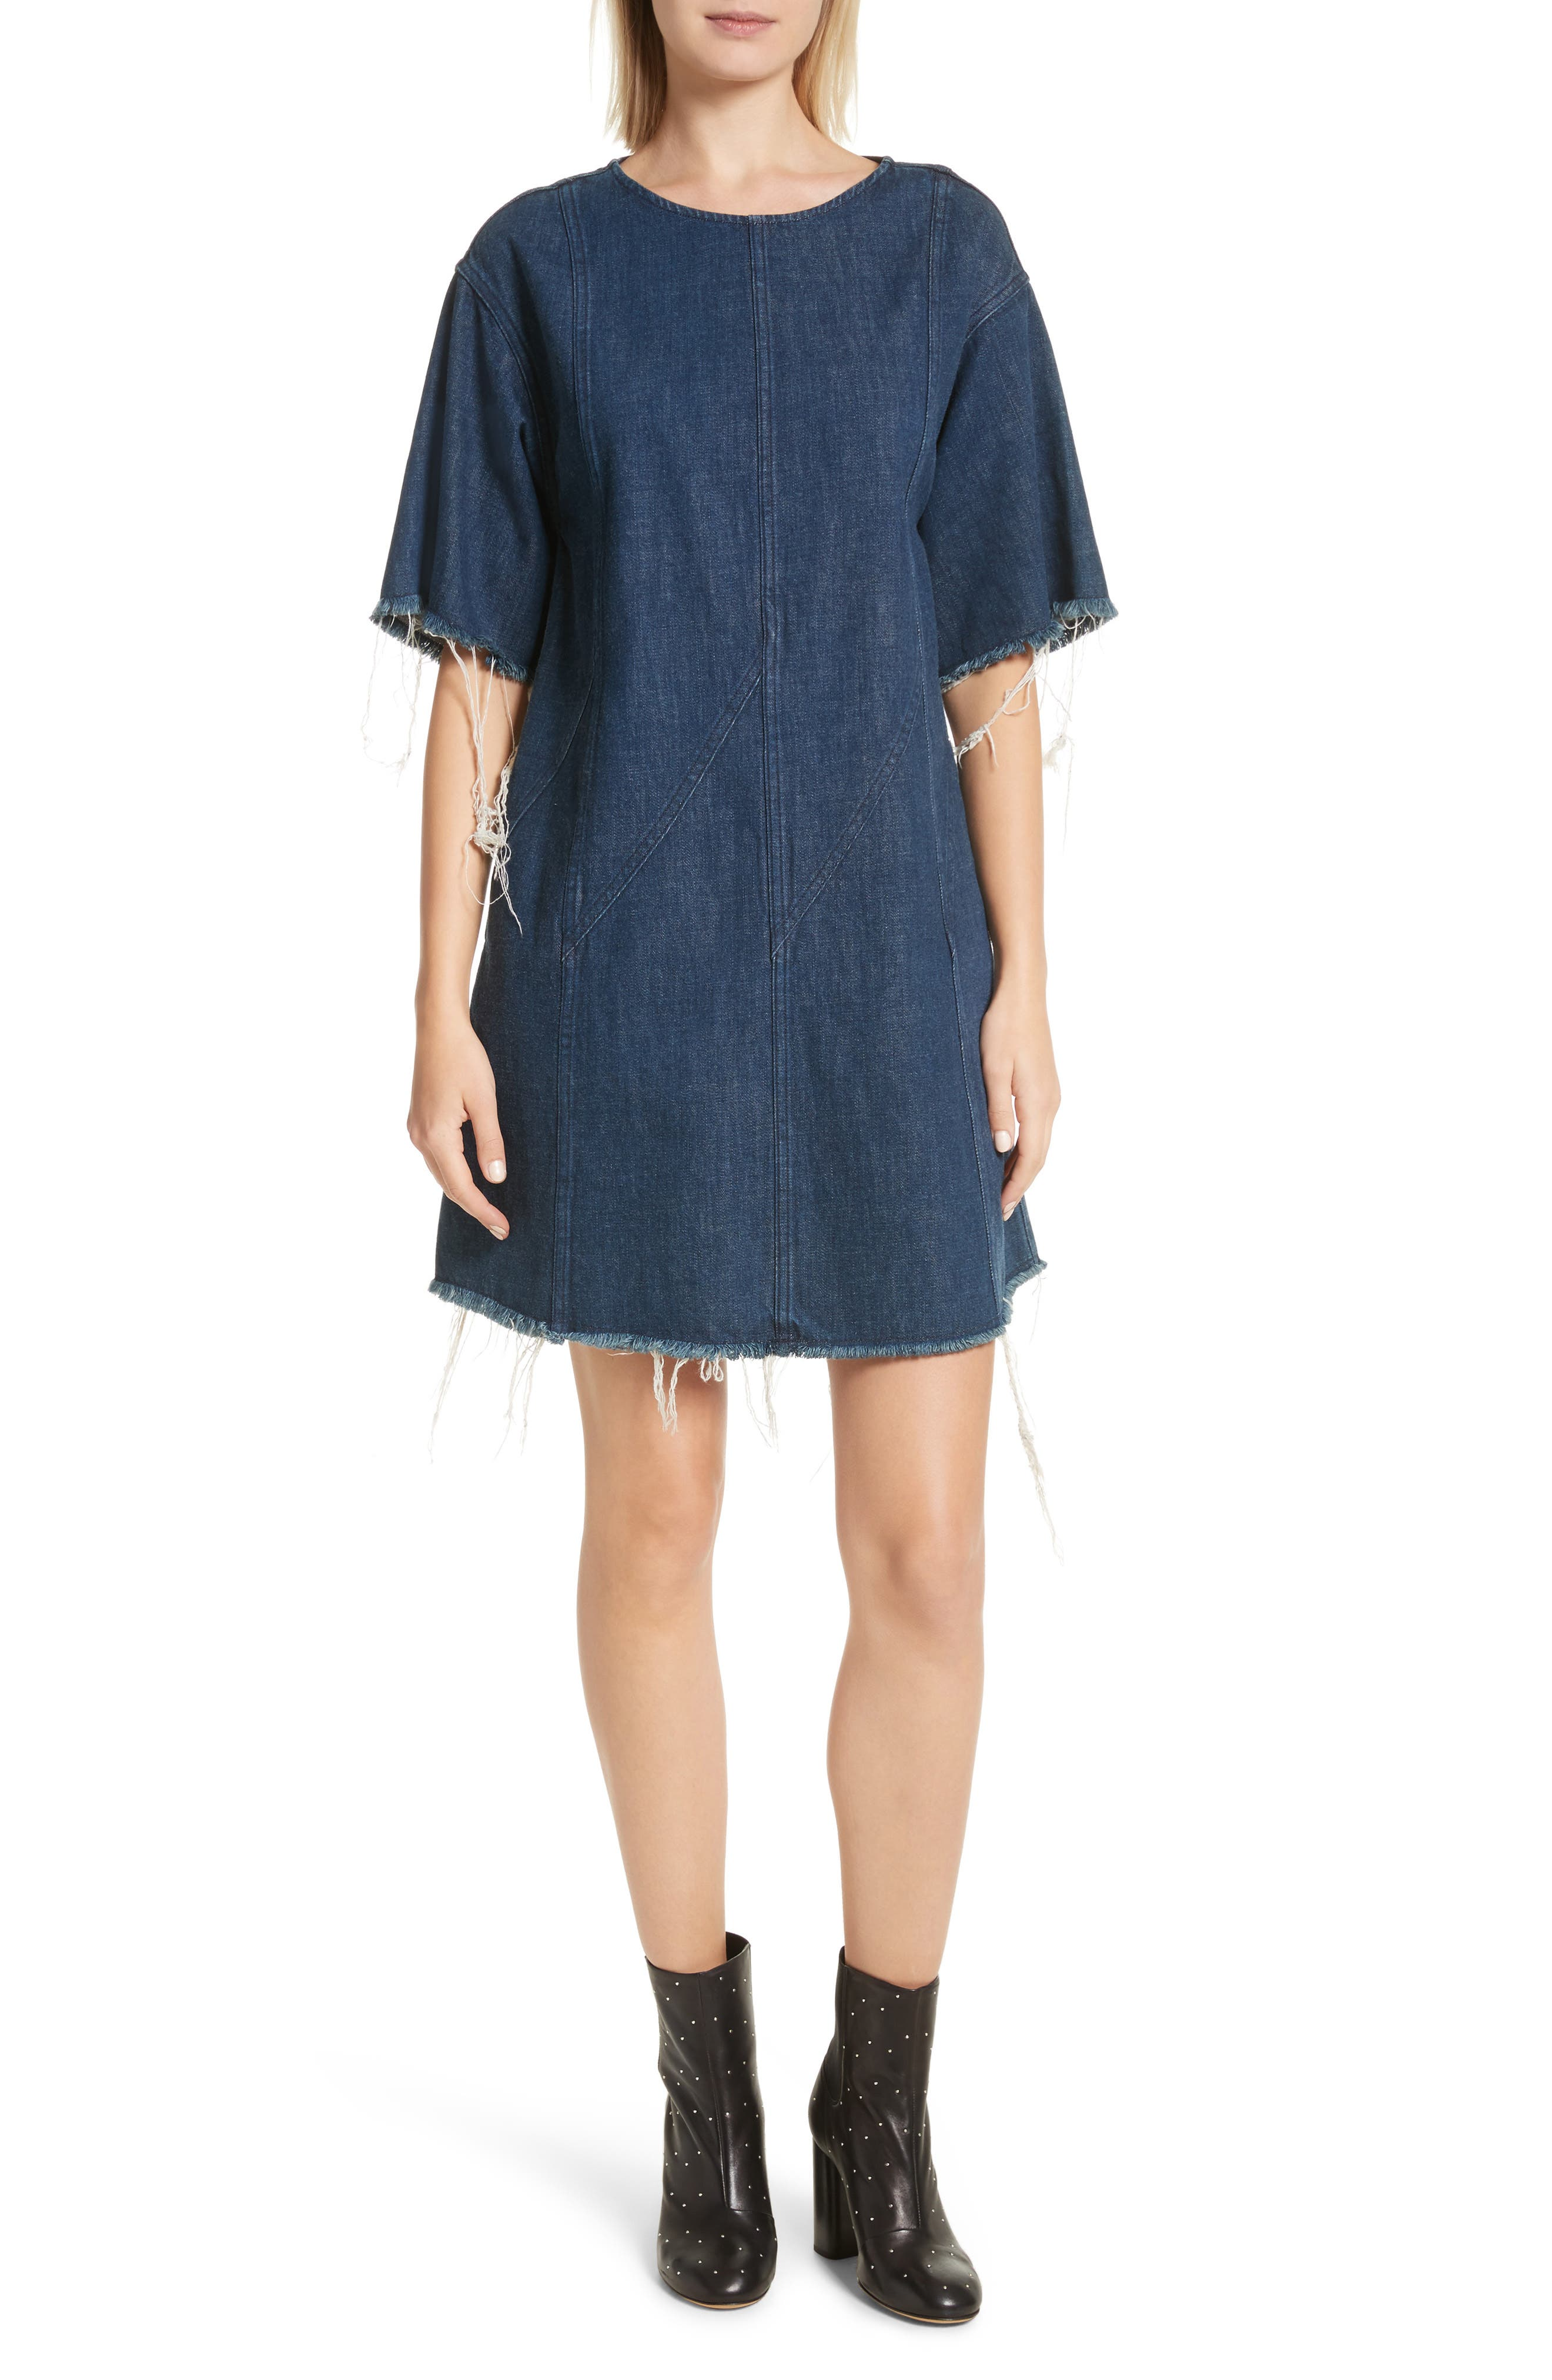 Kelly Denim Minidress,                             Main thumbnail 1, color,                             470